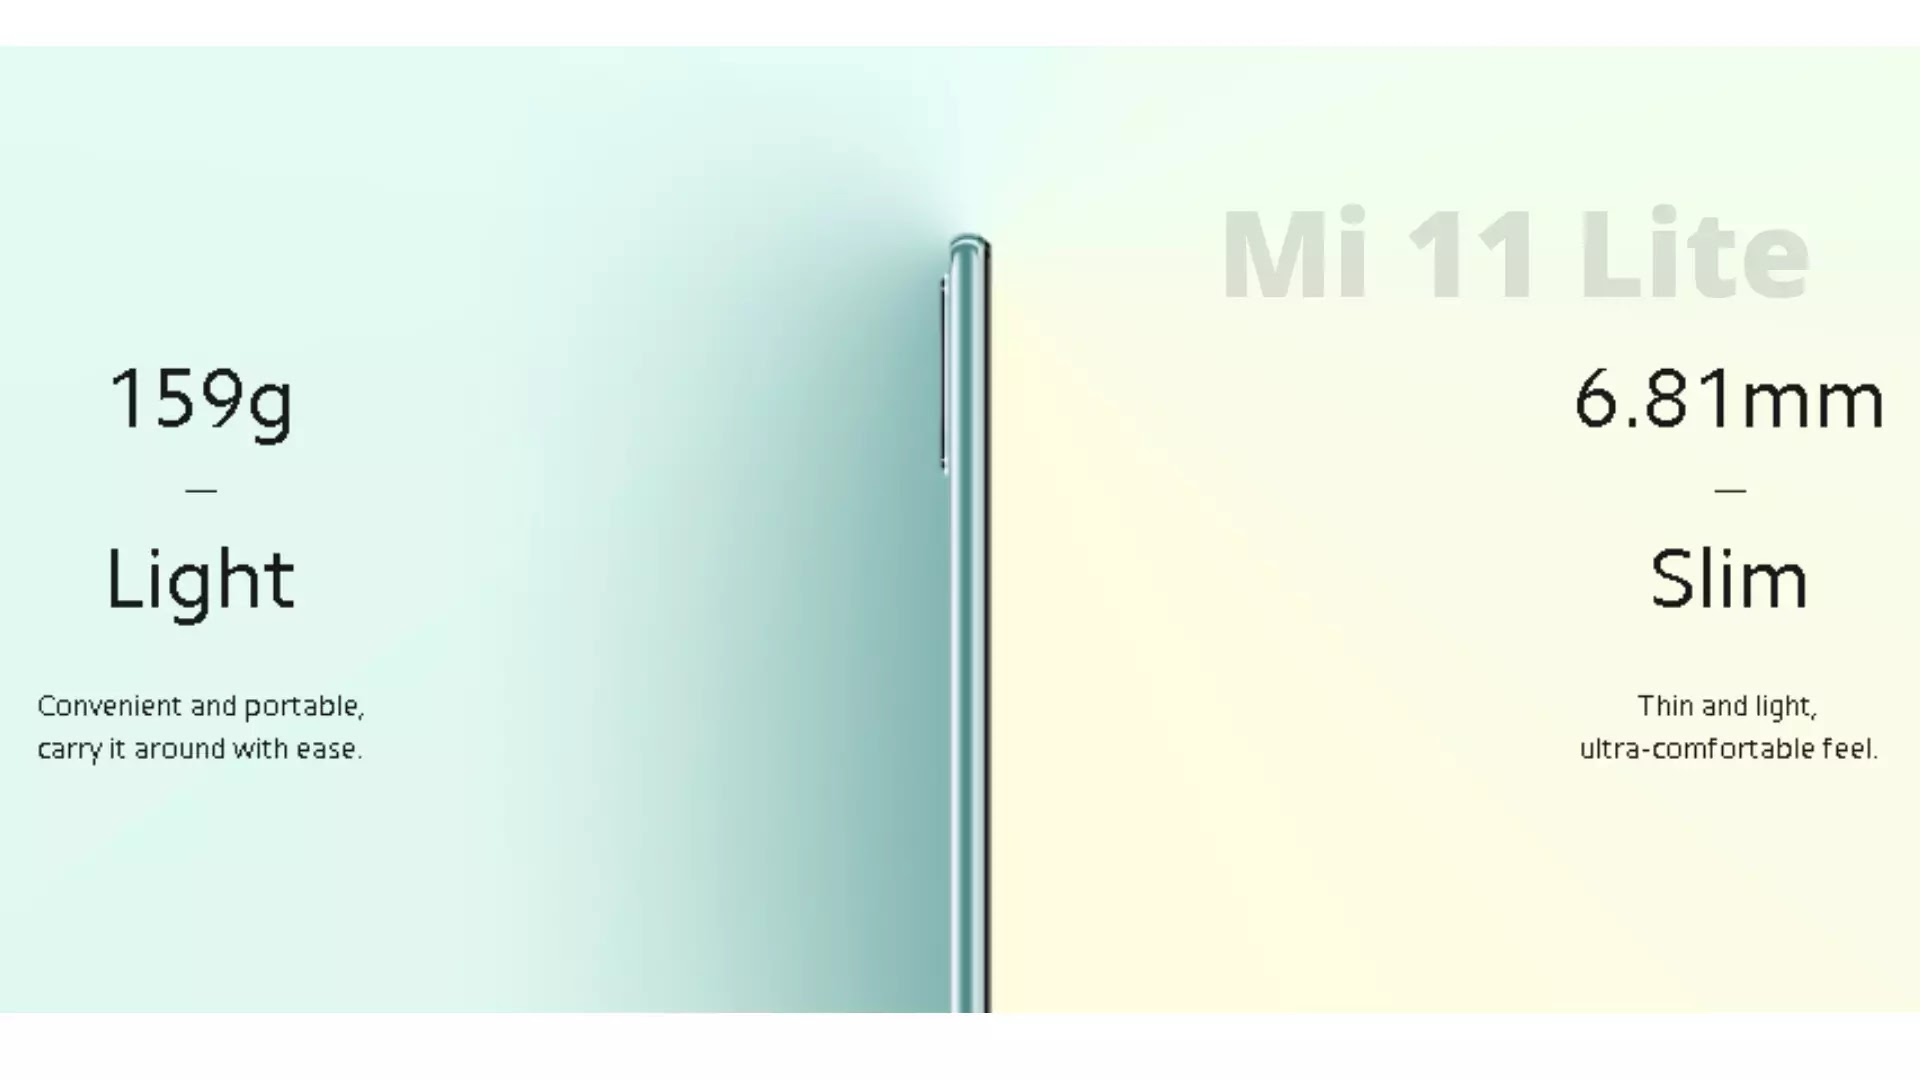 Mi 11 Lite will be launched in India on this day,